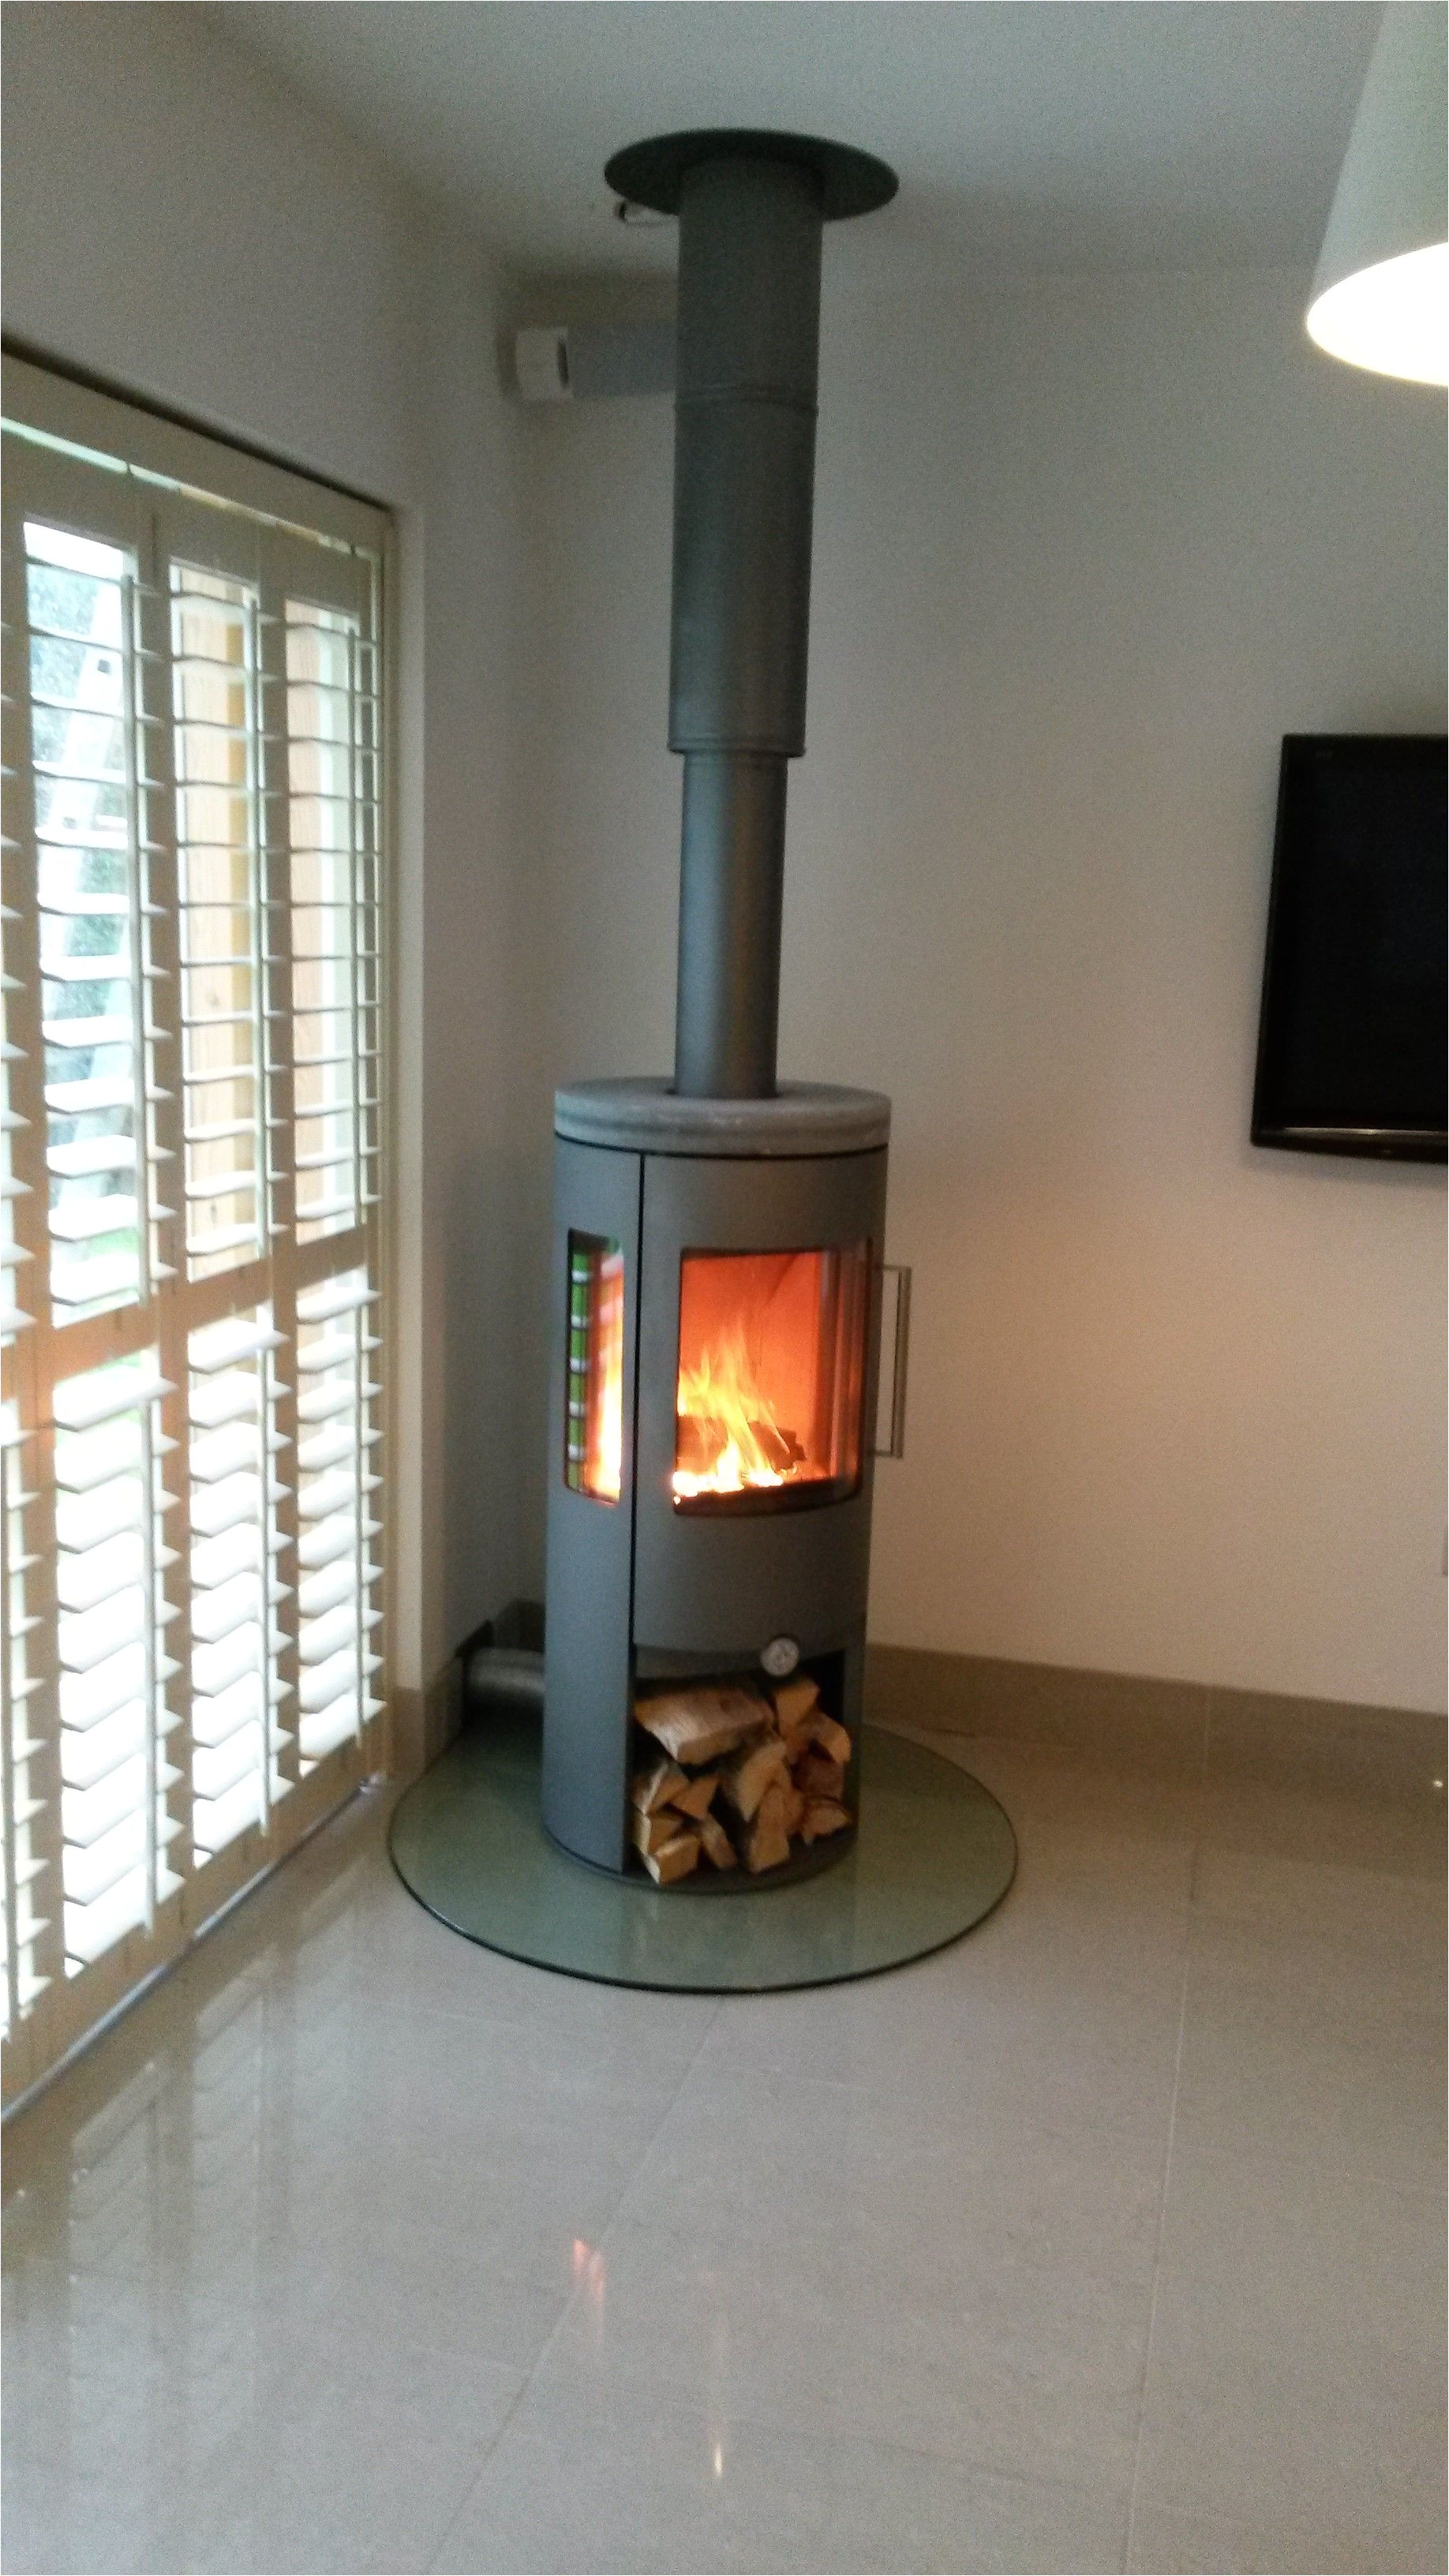 dan skan nuro 120 with side glass log store and soapstone top plate plate glass hearth